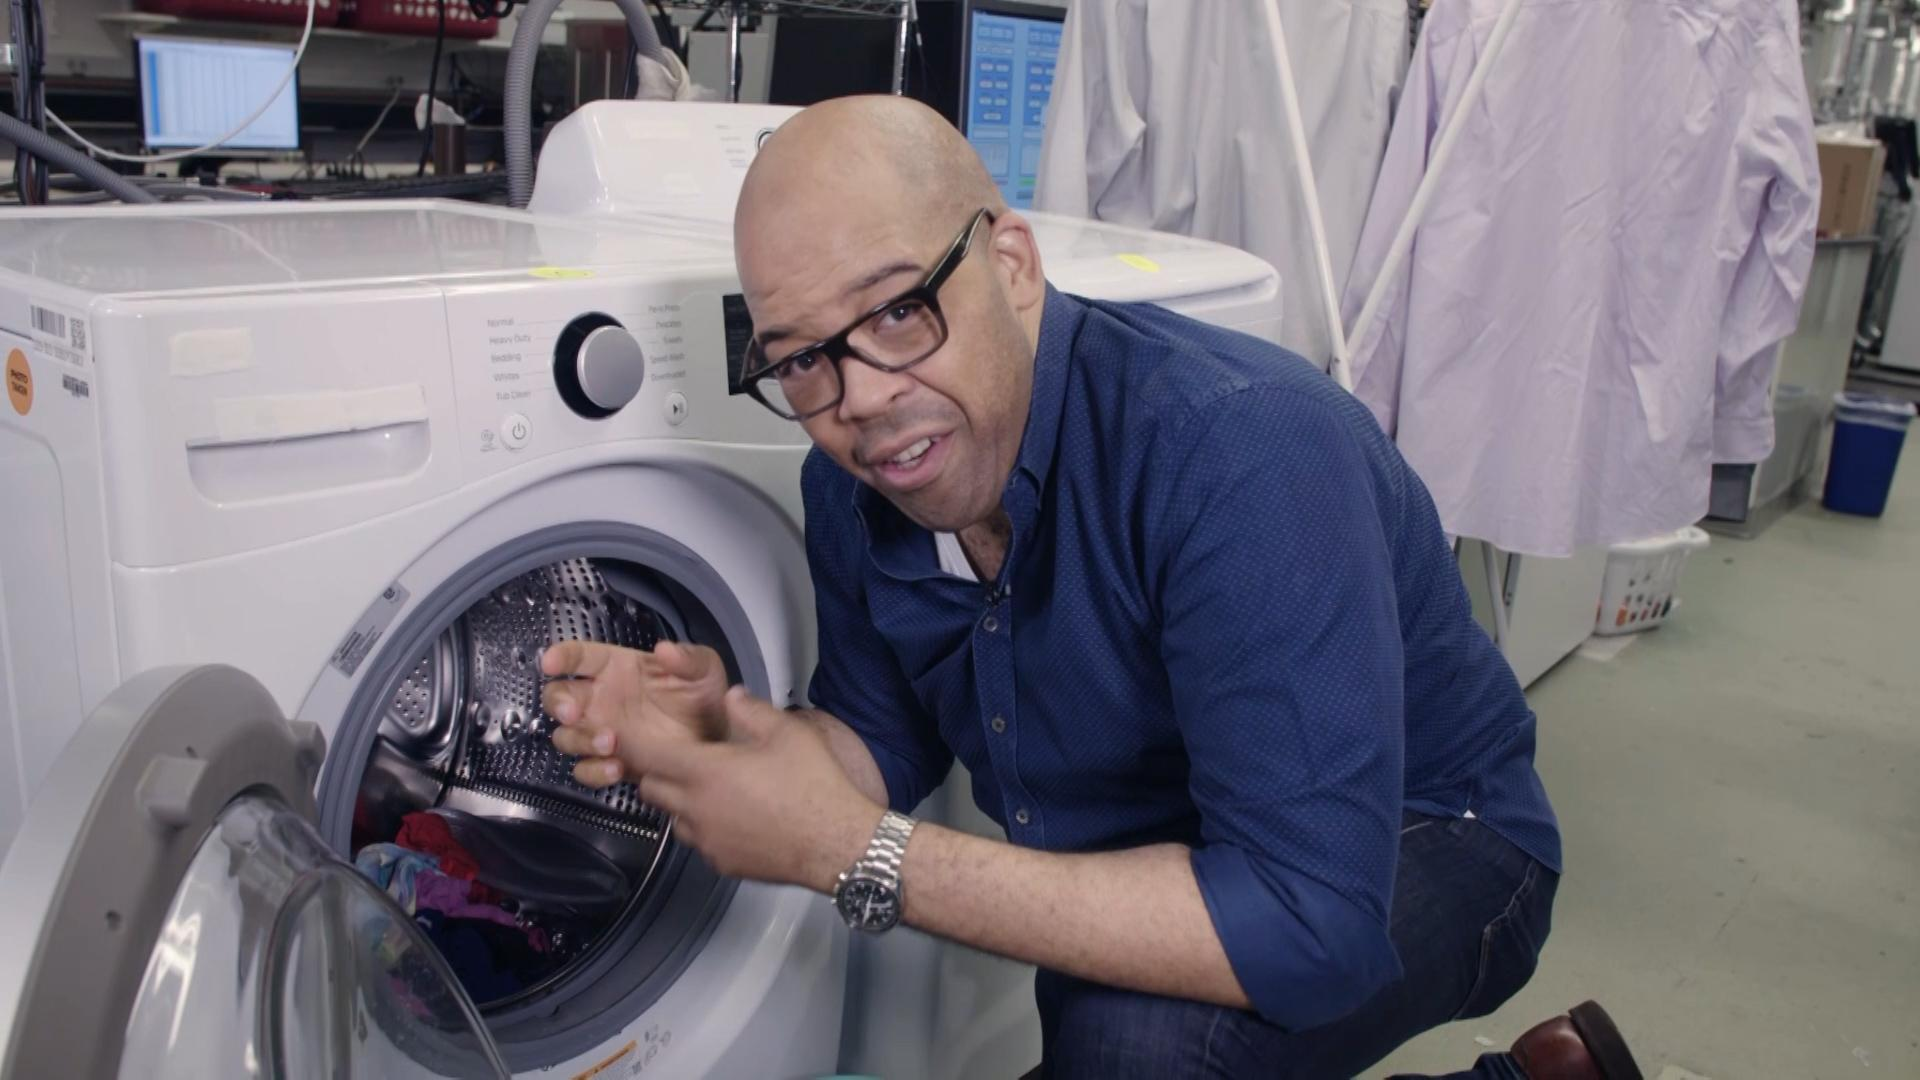 Don't Let Pet Hair Ruin Your Washer - Consumer Reports